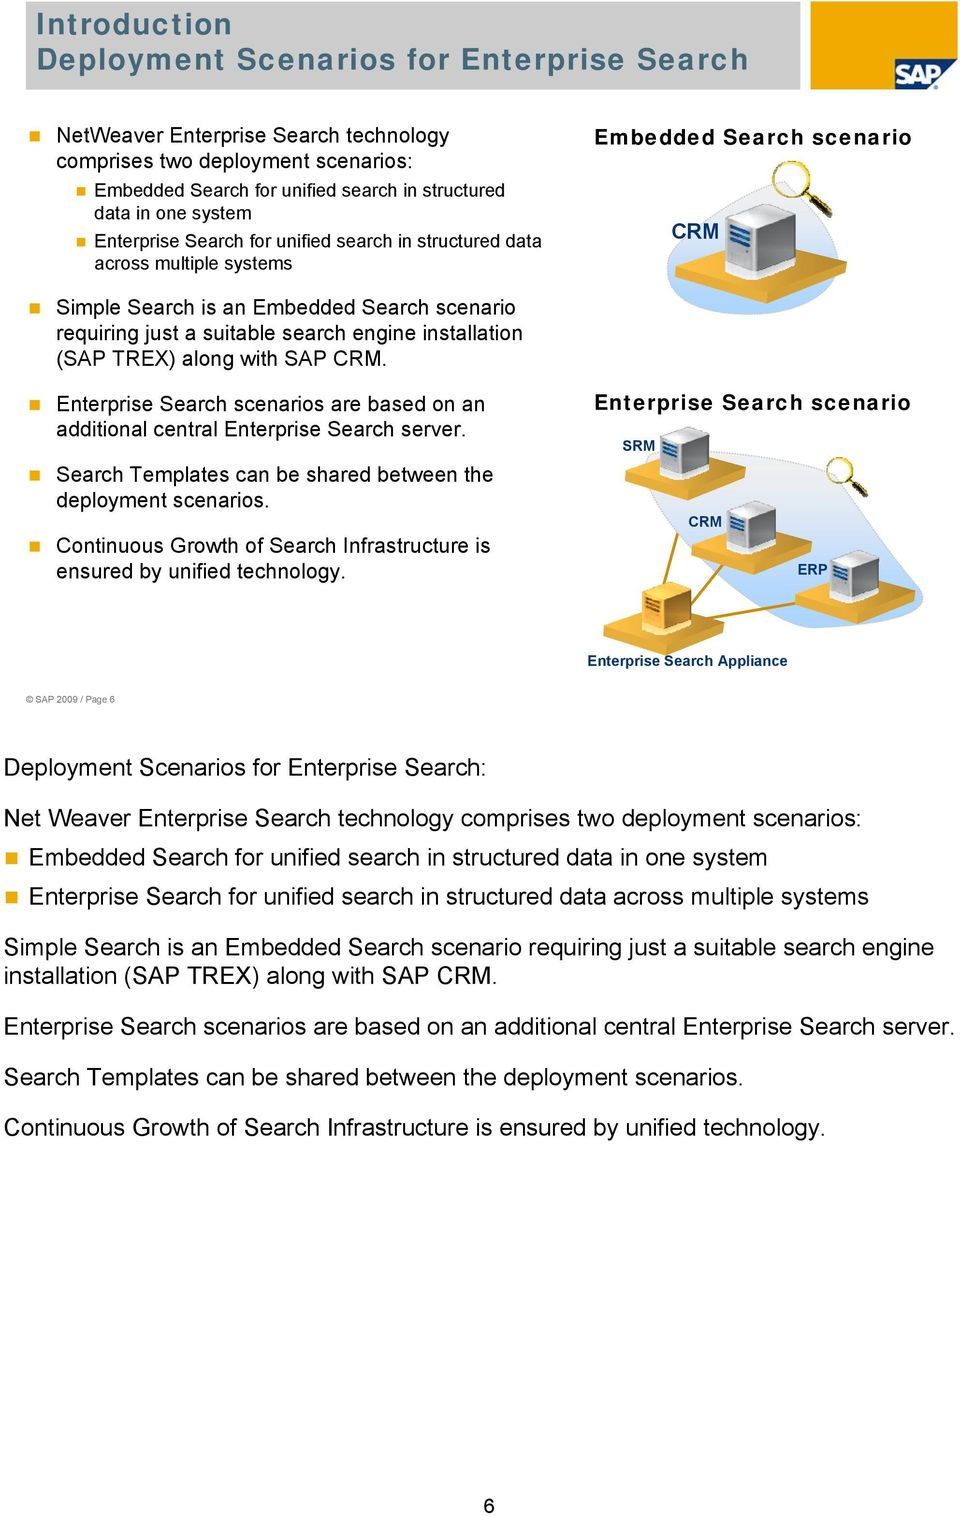 installation (SAP TREX) along with SAP CRM. Enterprise Search scenarios are based on an additional central Enterprise Search server. Search Templates can be shared between the deployment scenarios.